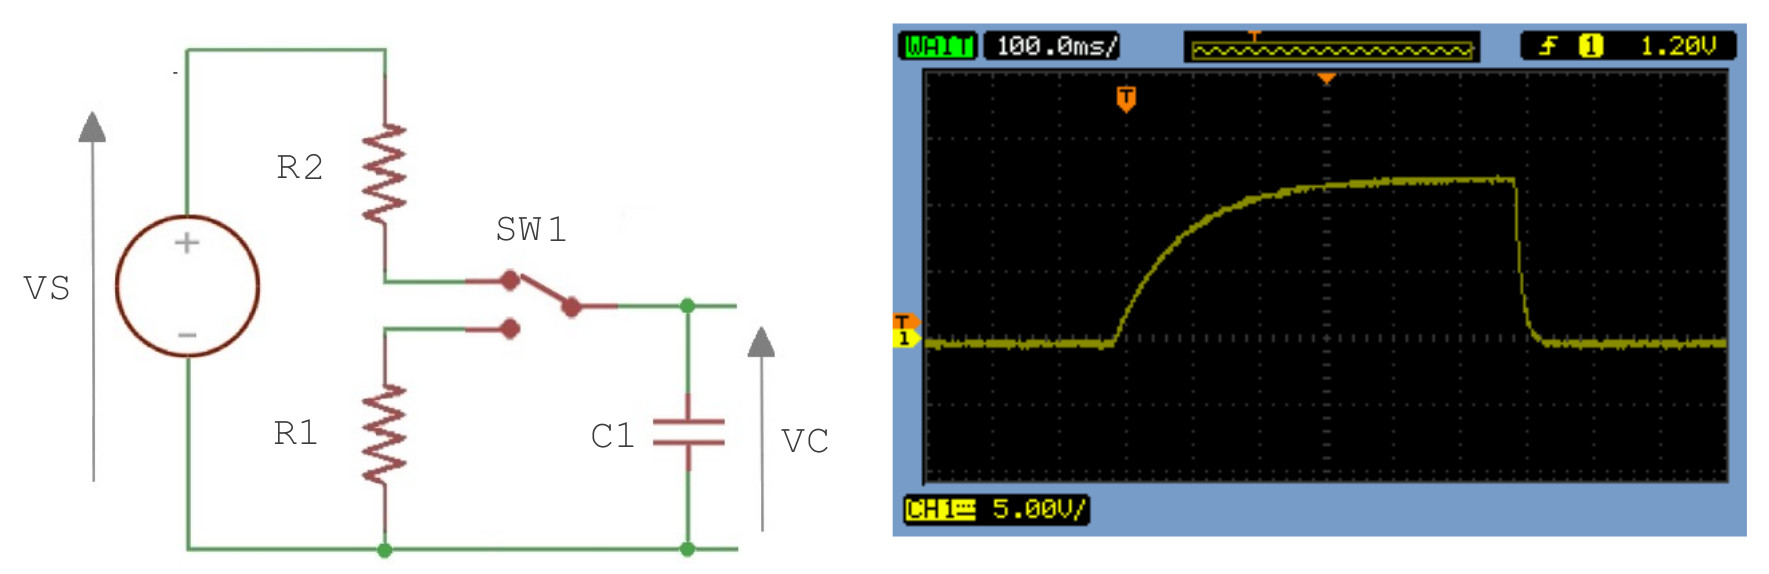 Pi Time Circuit Of A Capacitive Discharge Firing Box Resembles This Figure 26 Simple Capacitor Charge The Sw In Previous